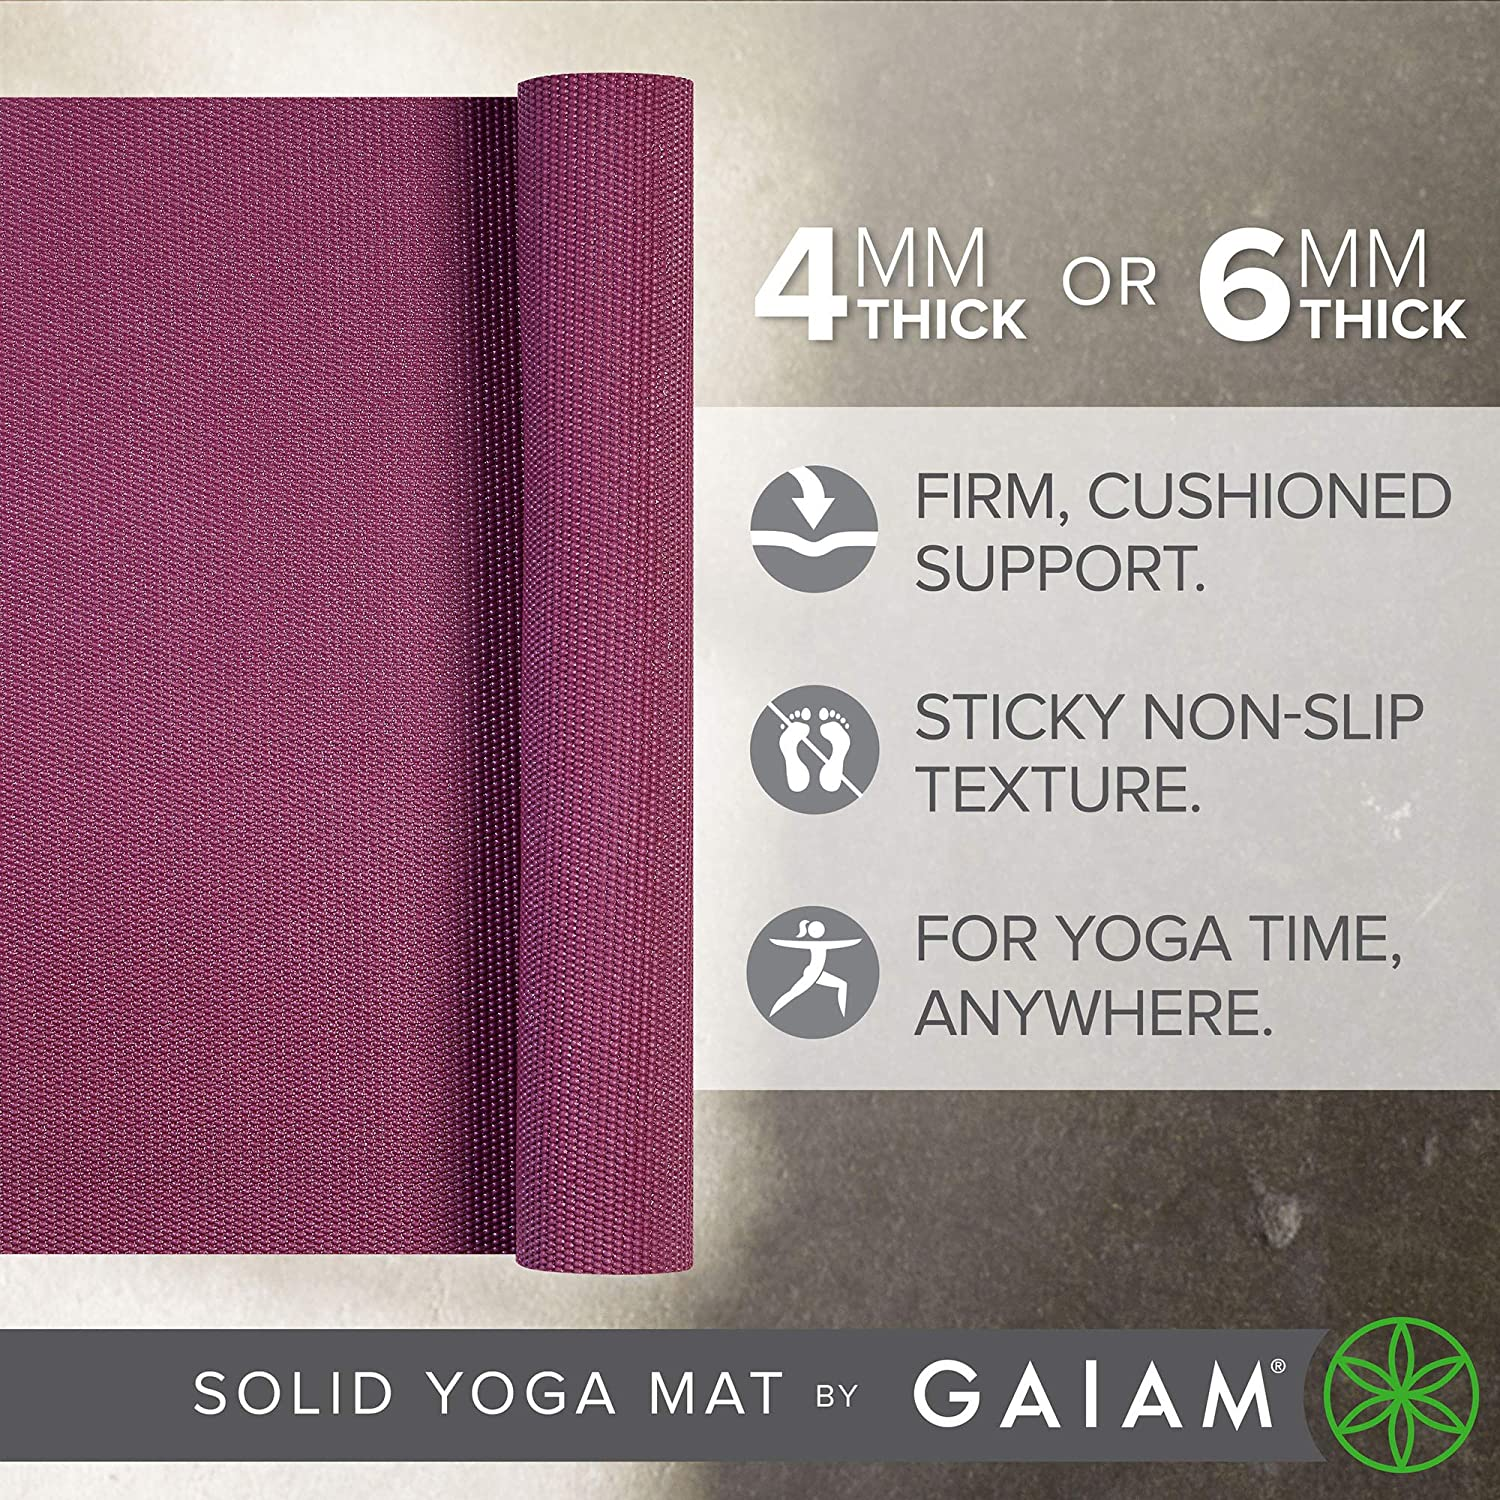 68 x 24 x 4mm or 6mm Thick Gaiam Yoga Mat Pilates /& Floor Workouts Solid Color Exercise /& Fitness Mat for All Types of Yoga